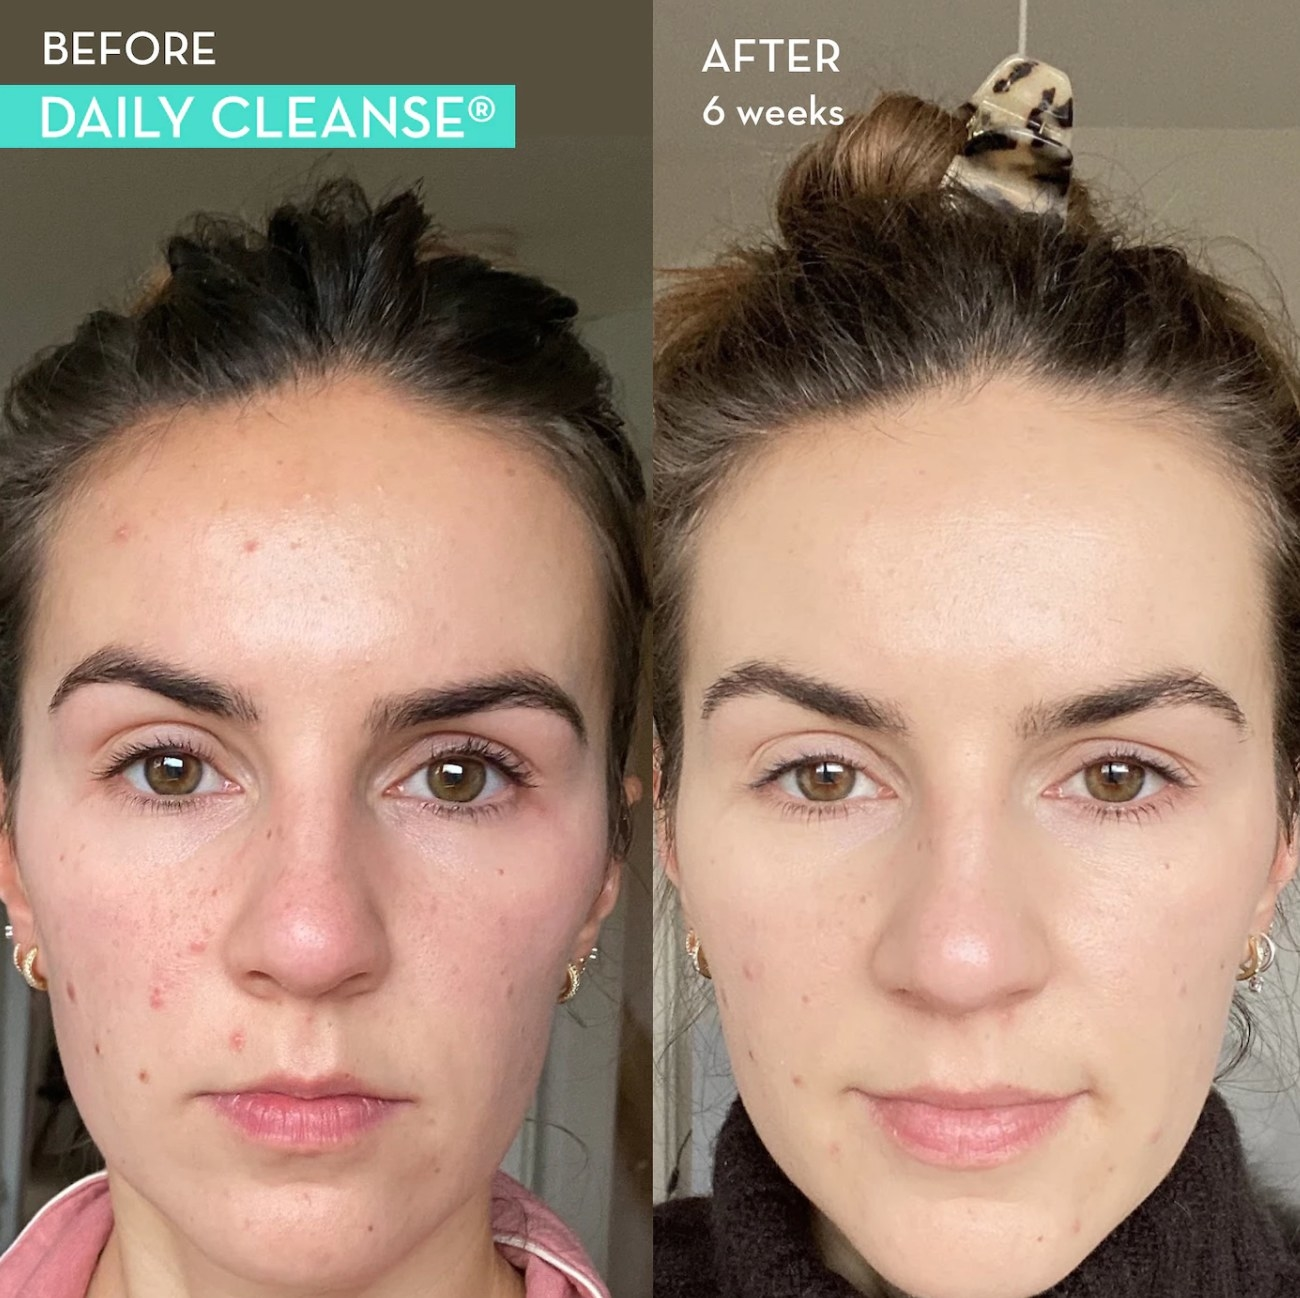 Woman showing her skin before and after taking Daily cleanse